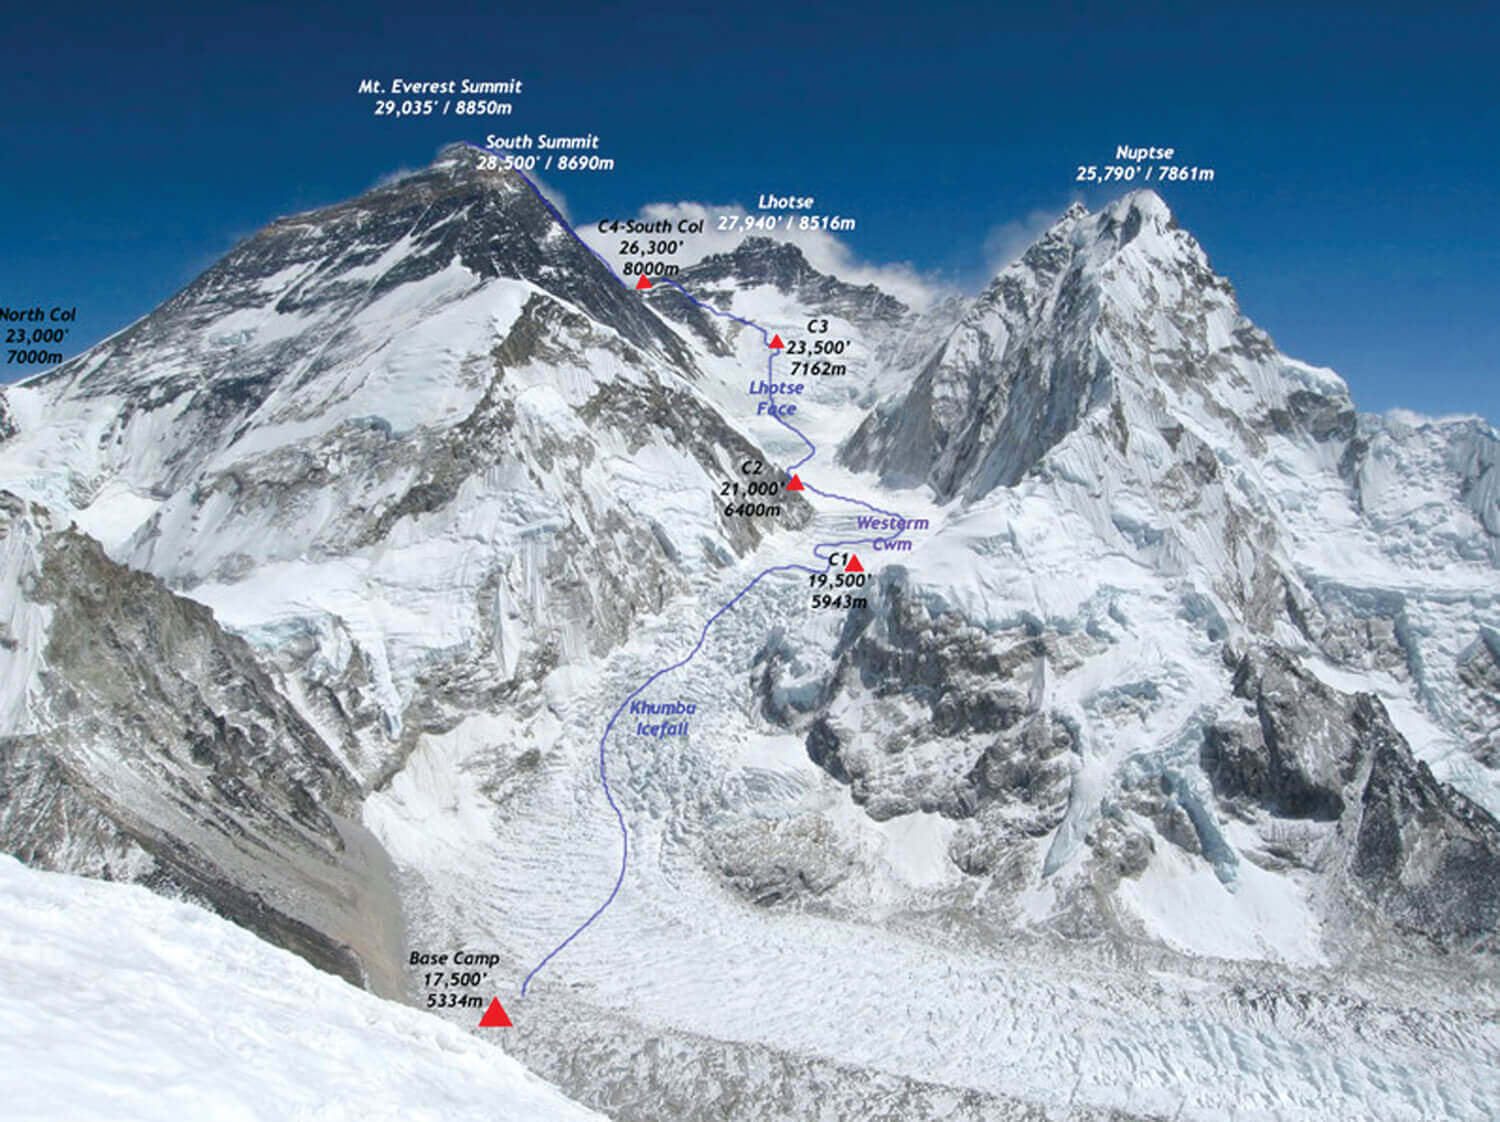 Two Nepalese Sherpas break world records with Mount Everest climb